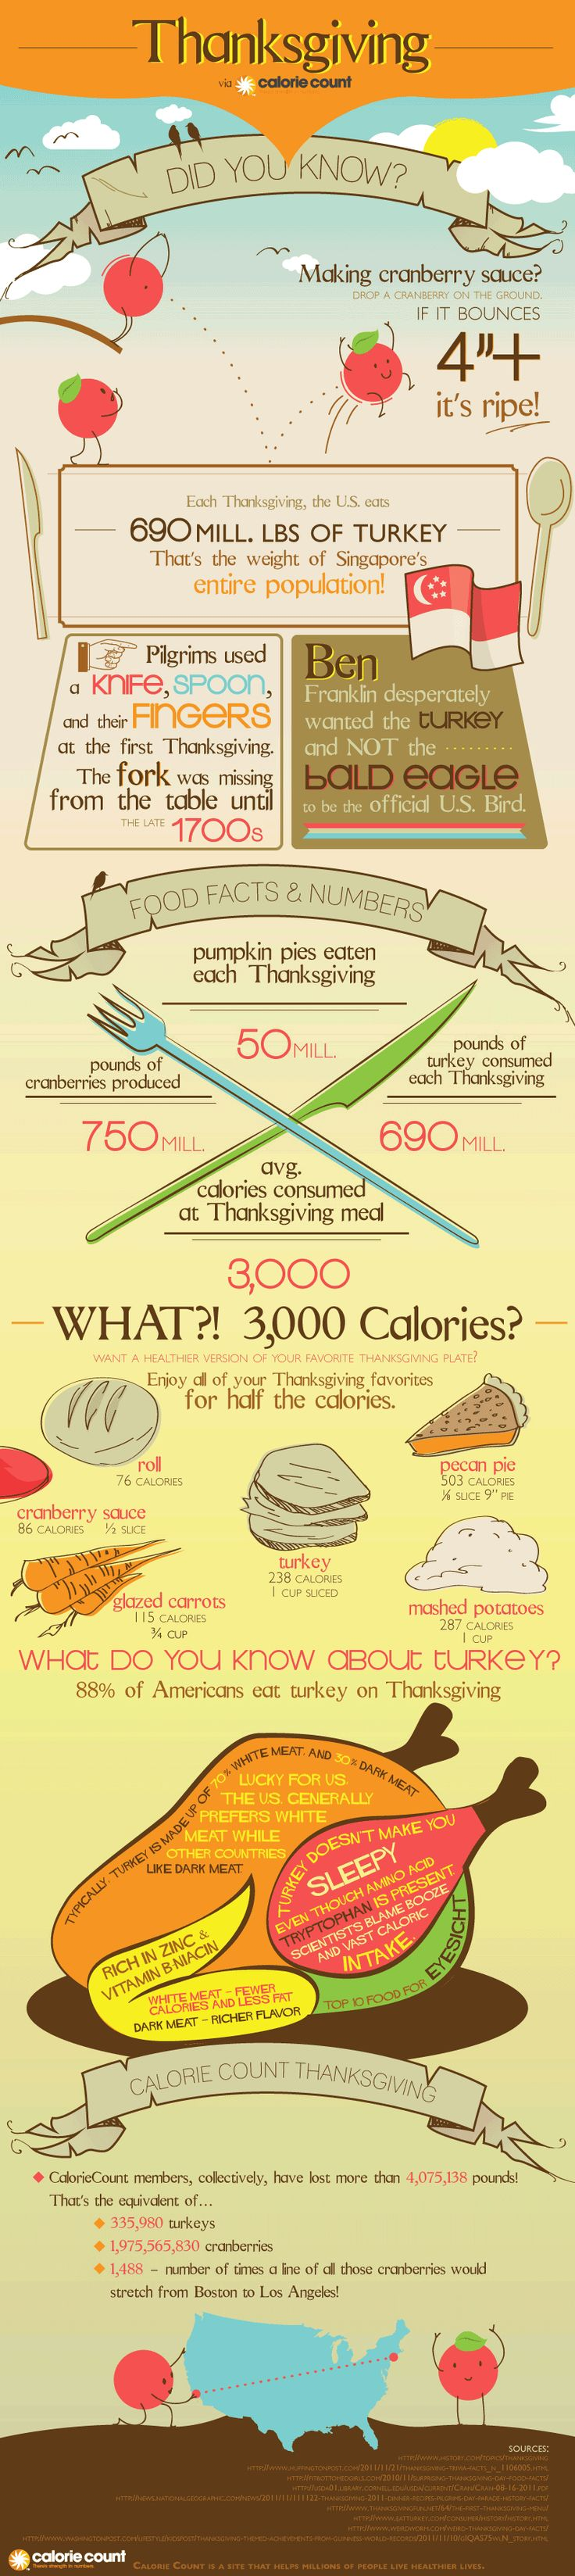 Thanksgiving Infographic - Fun Facts about Thanksgiving Foods